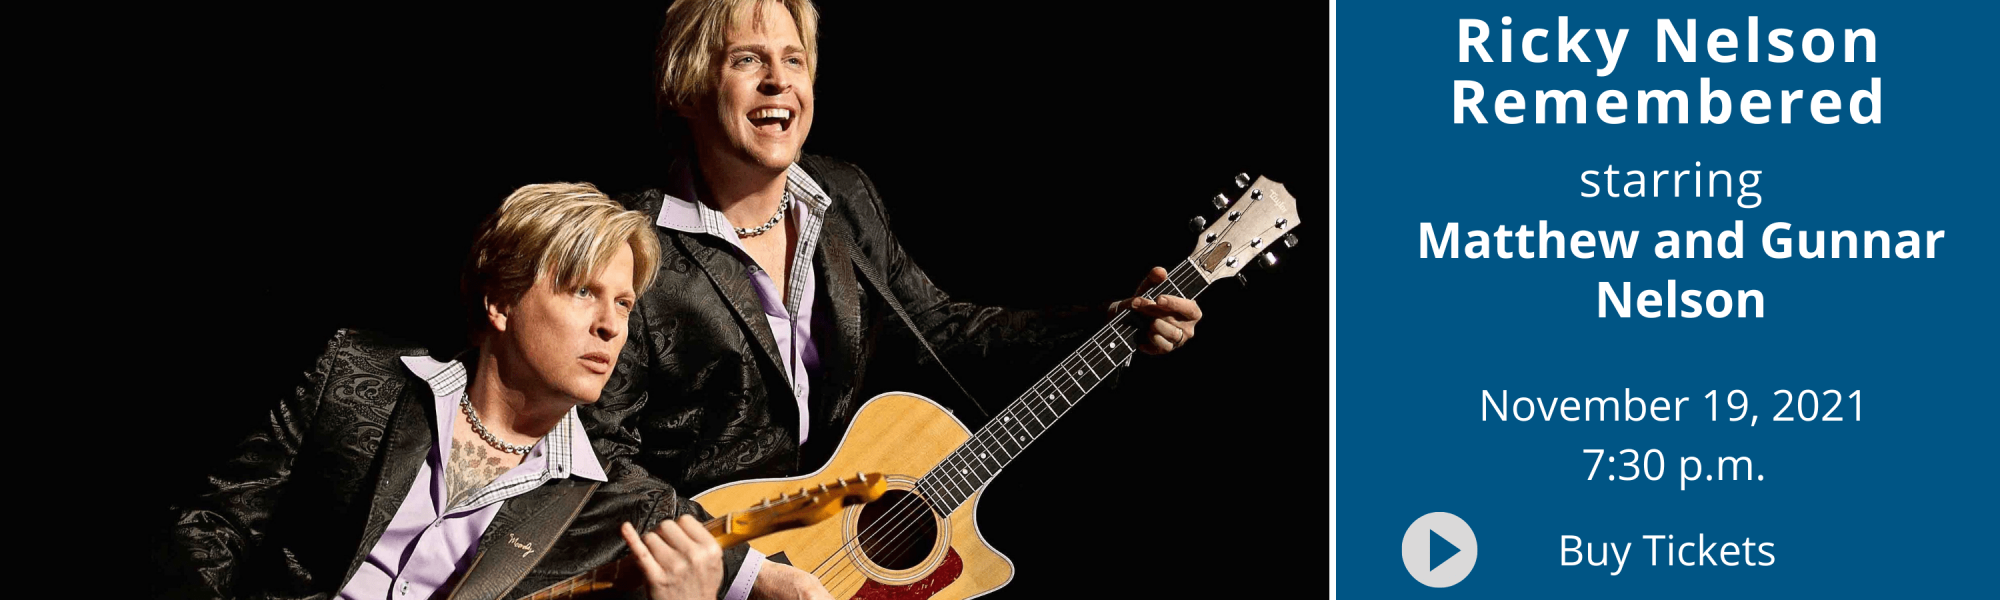 Ricky Nelson Remembered starring Matthew and Gunnar Nelson, November 19, 2021 at 7:30 p.m. Buy Tickets